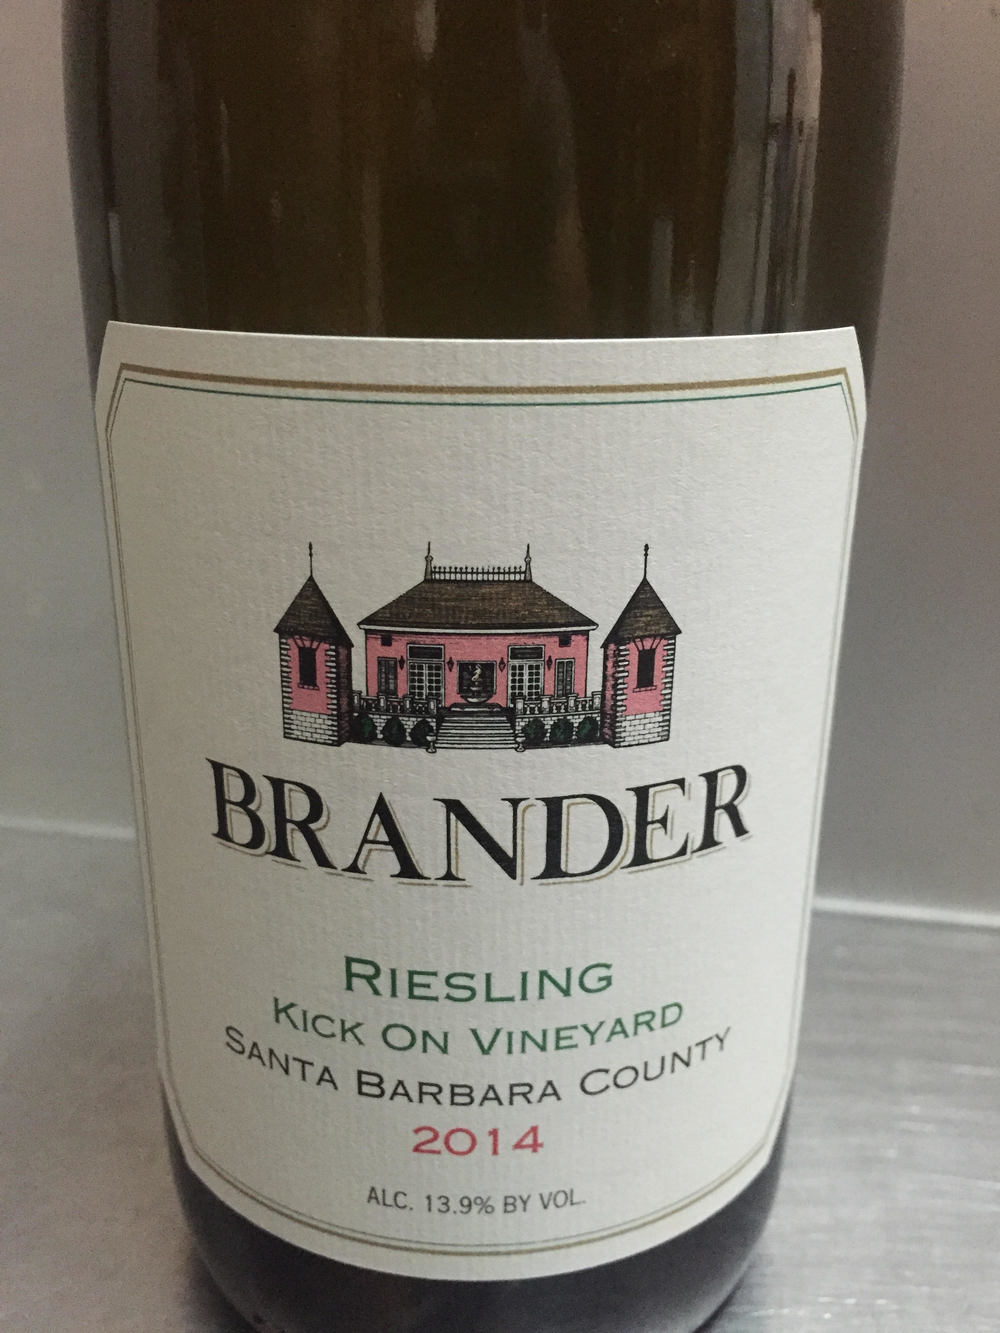 Brander Kick On Vineyard Reisling 2014 | VAULT29